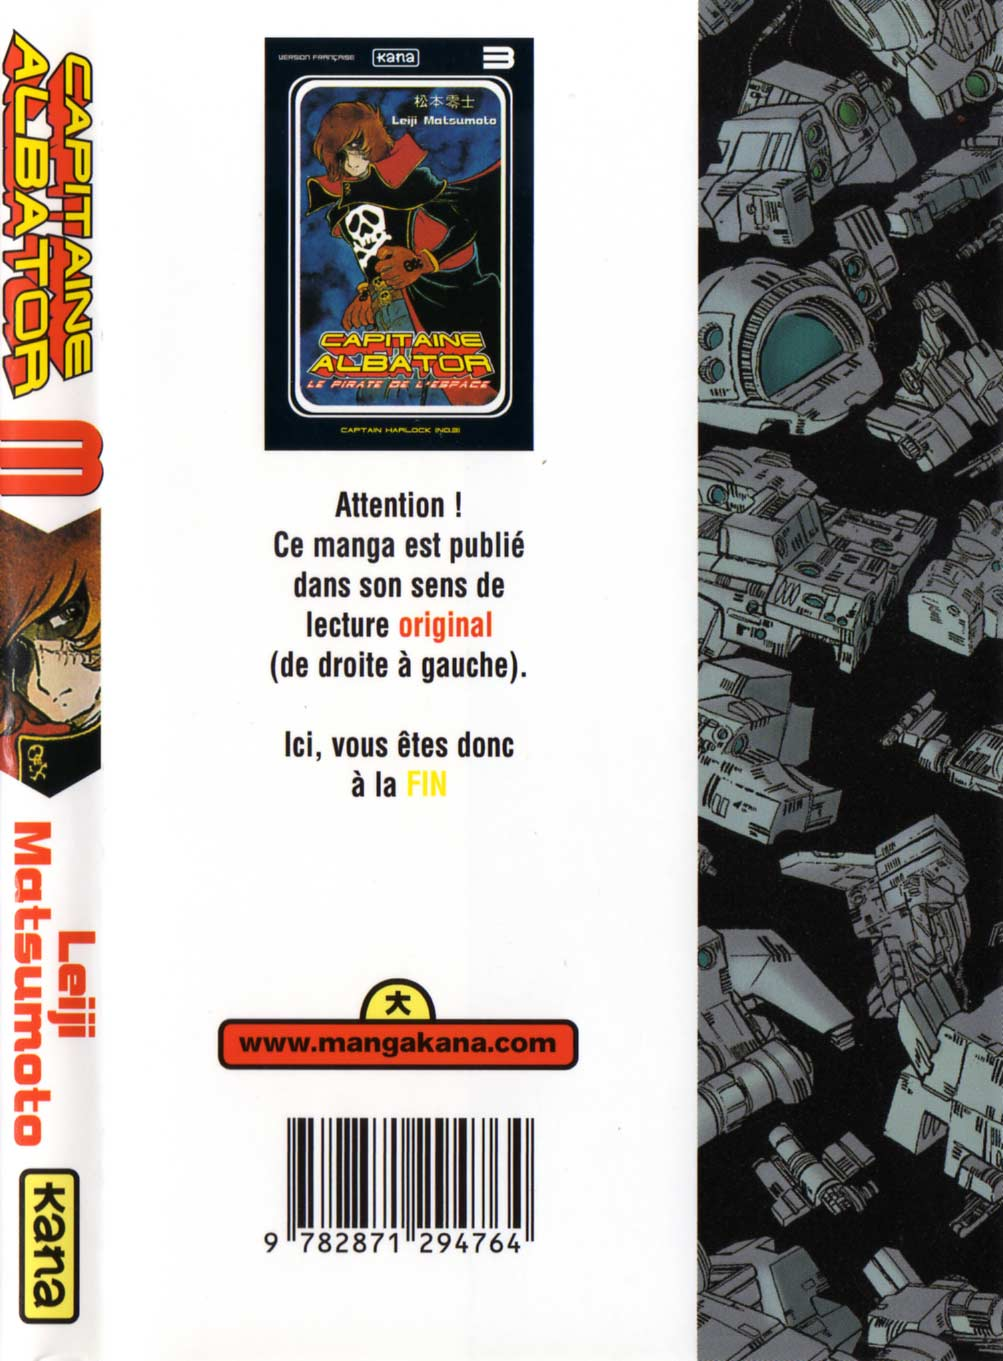 Tome 3 : Capitaine Albator (couverture dos)